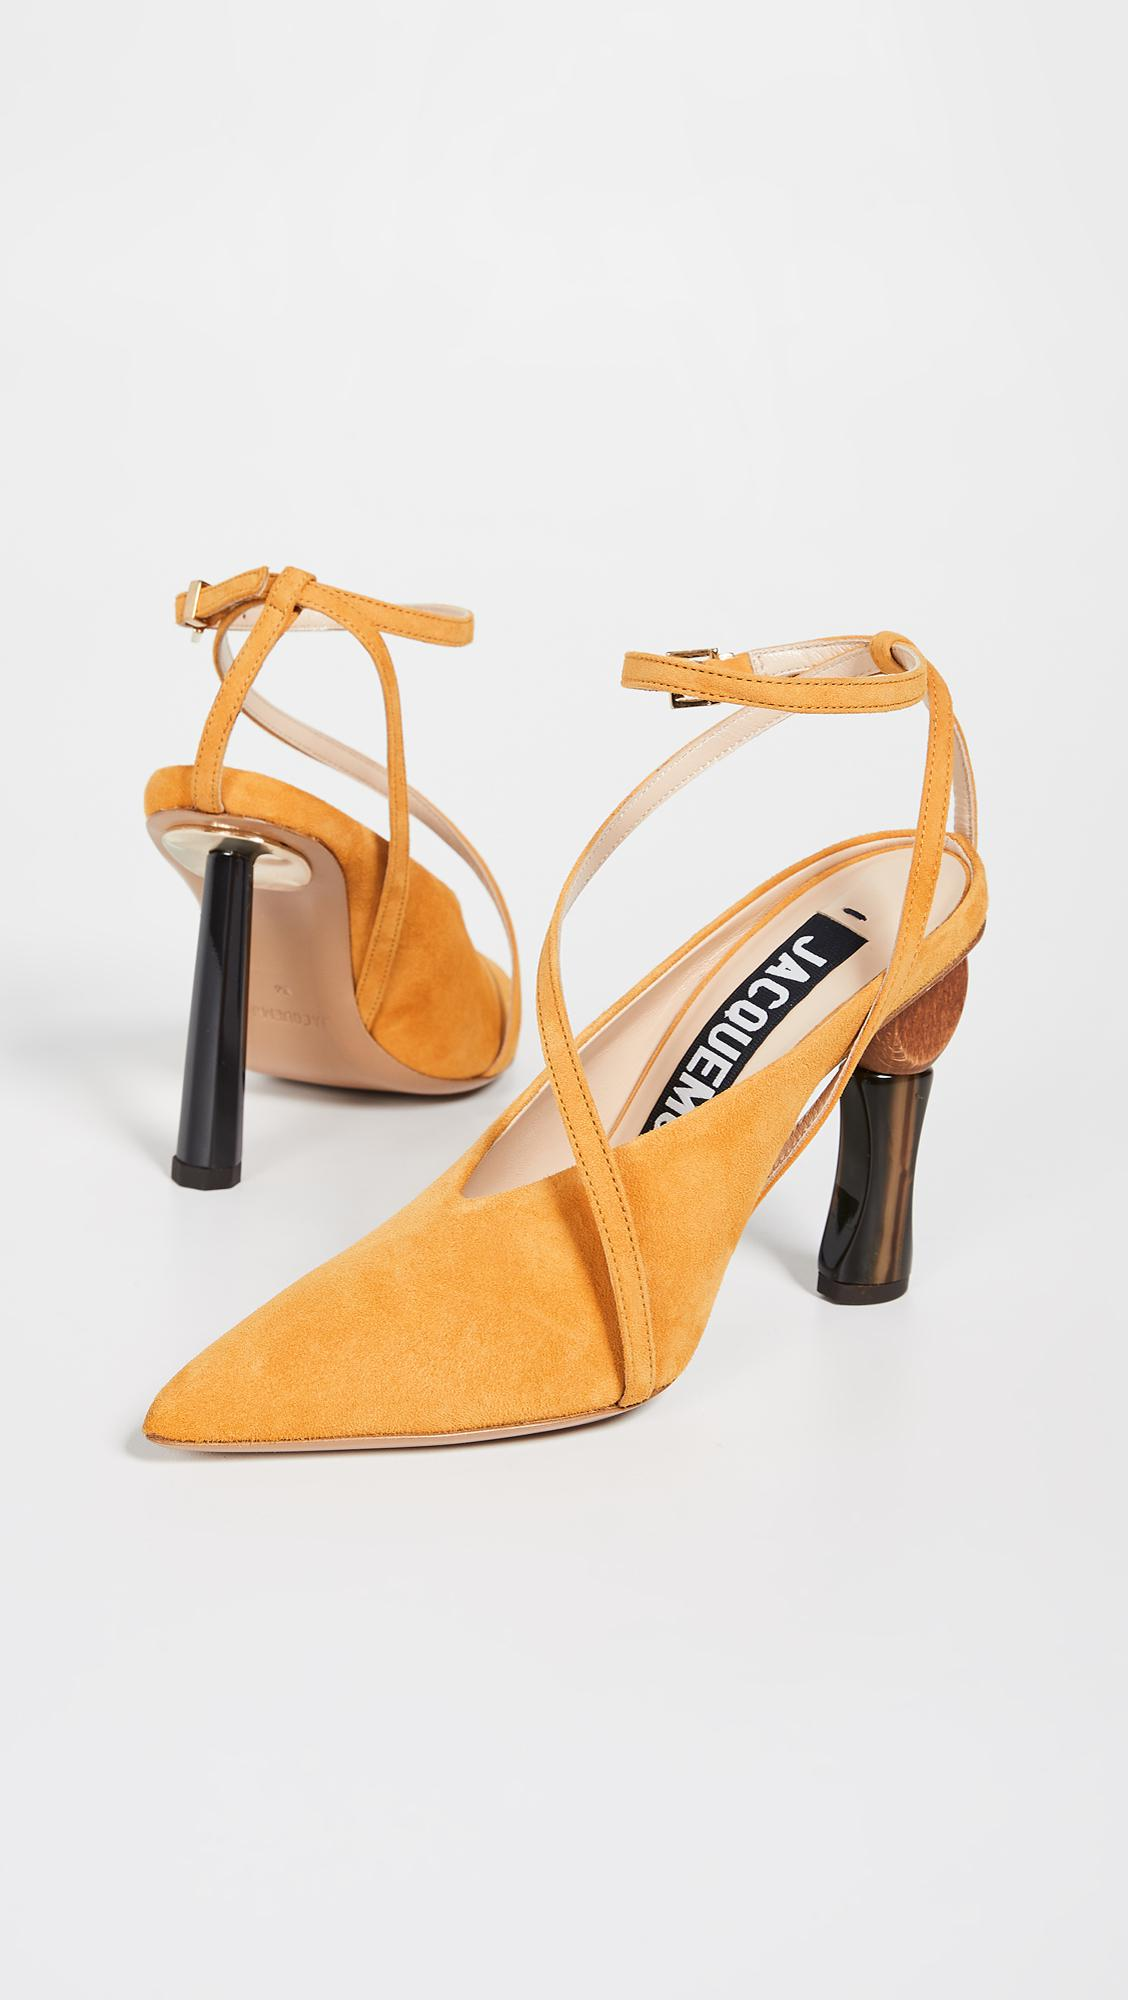 Pumps Les In Yellow Lyst Chaussures Faya Jacquemus Save v4wB7q